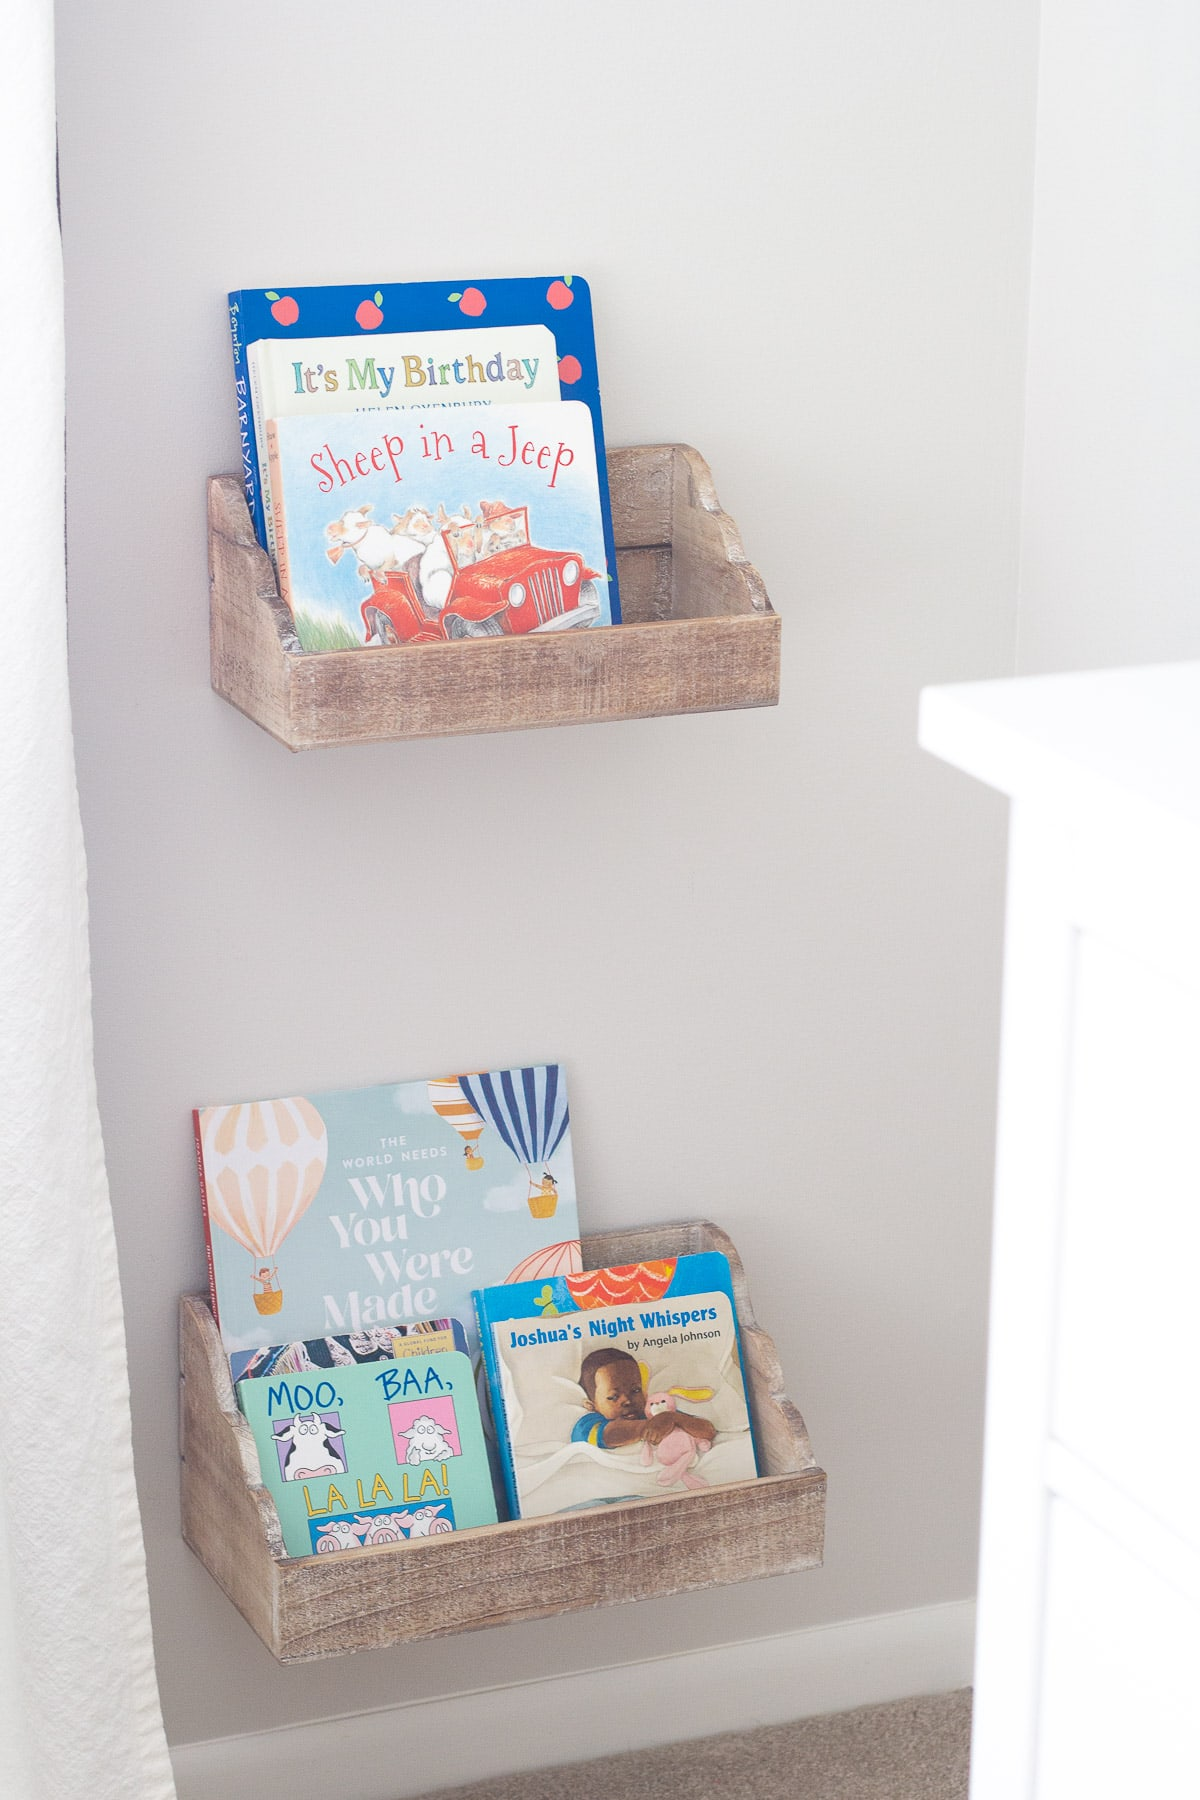 Kids' books in a nursery displayed in floating shelves.